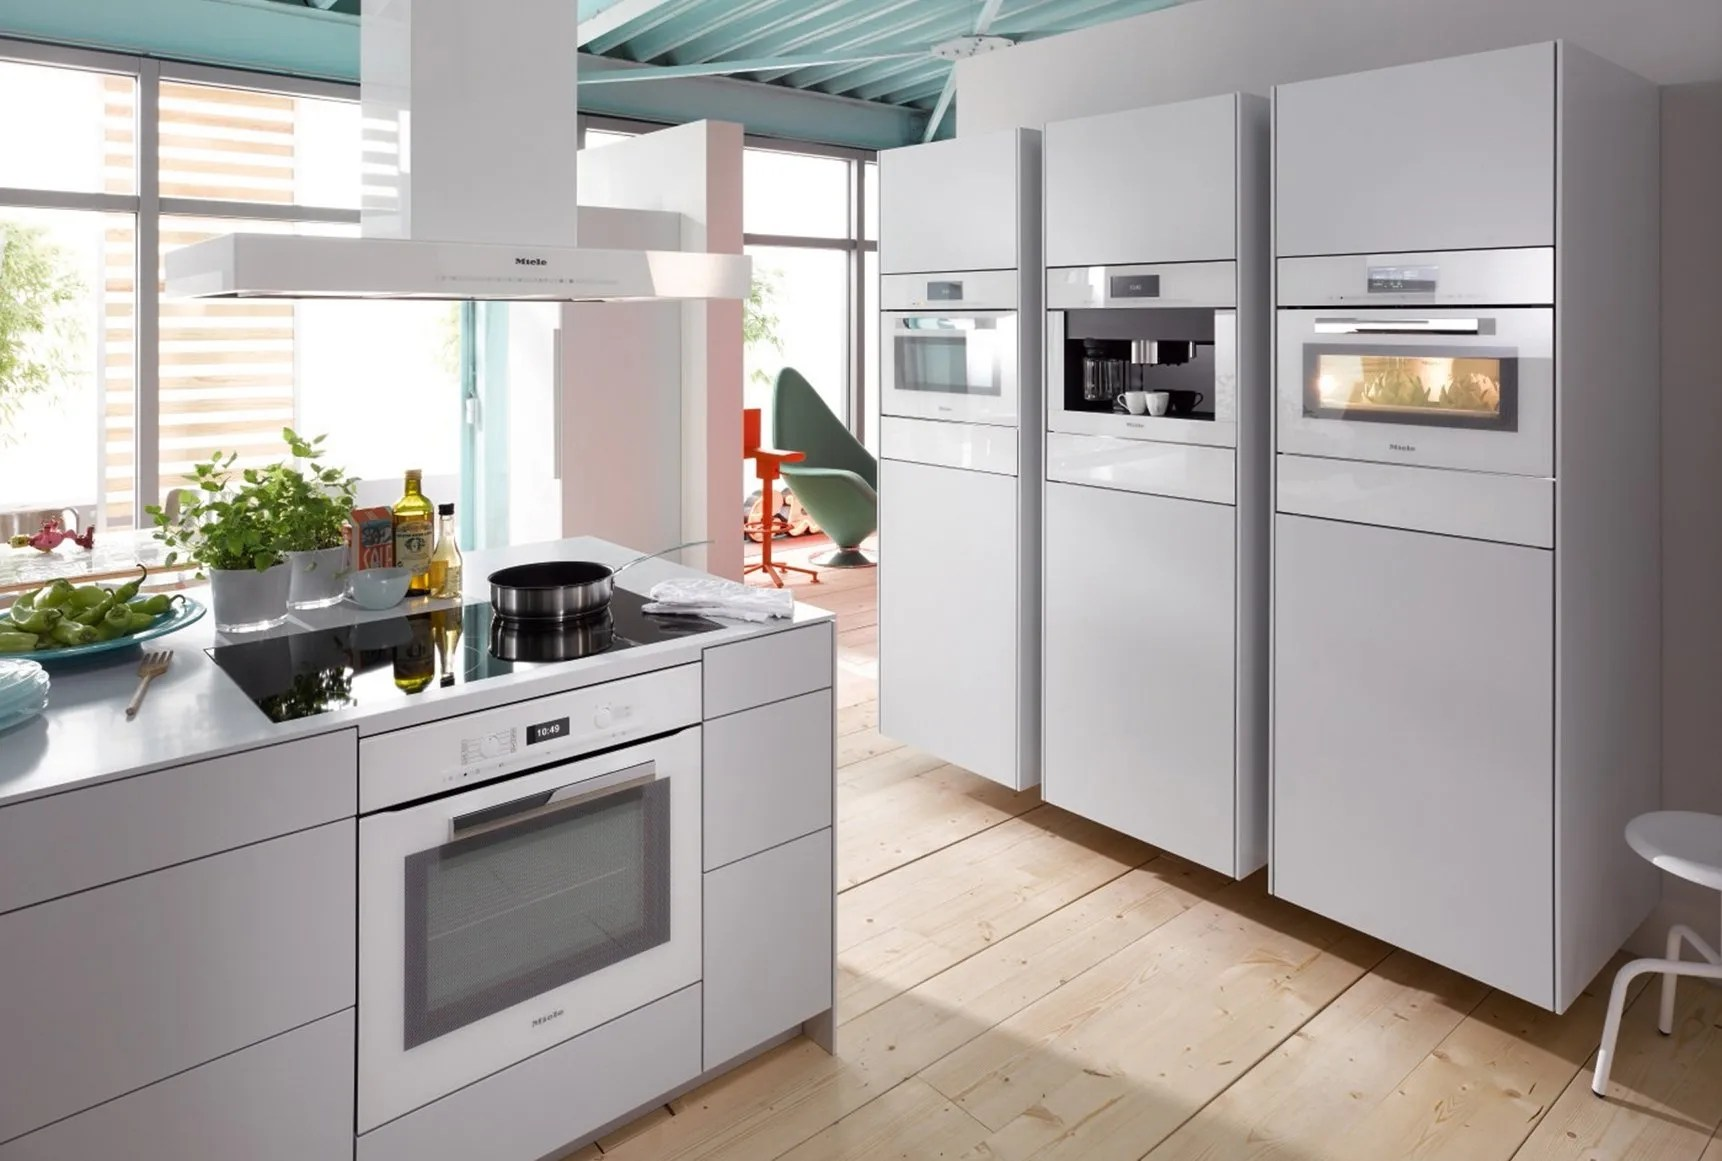 Miele Backofen In Ikea Küche Miele Presents New 39pureline 39 And 39contourline 39